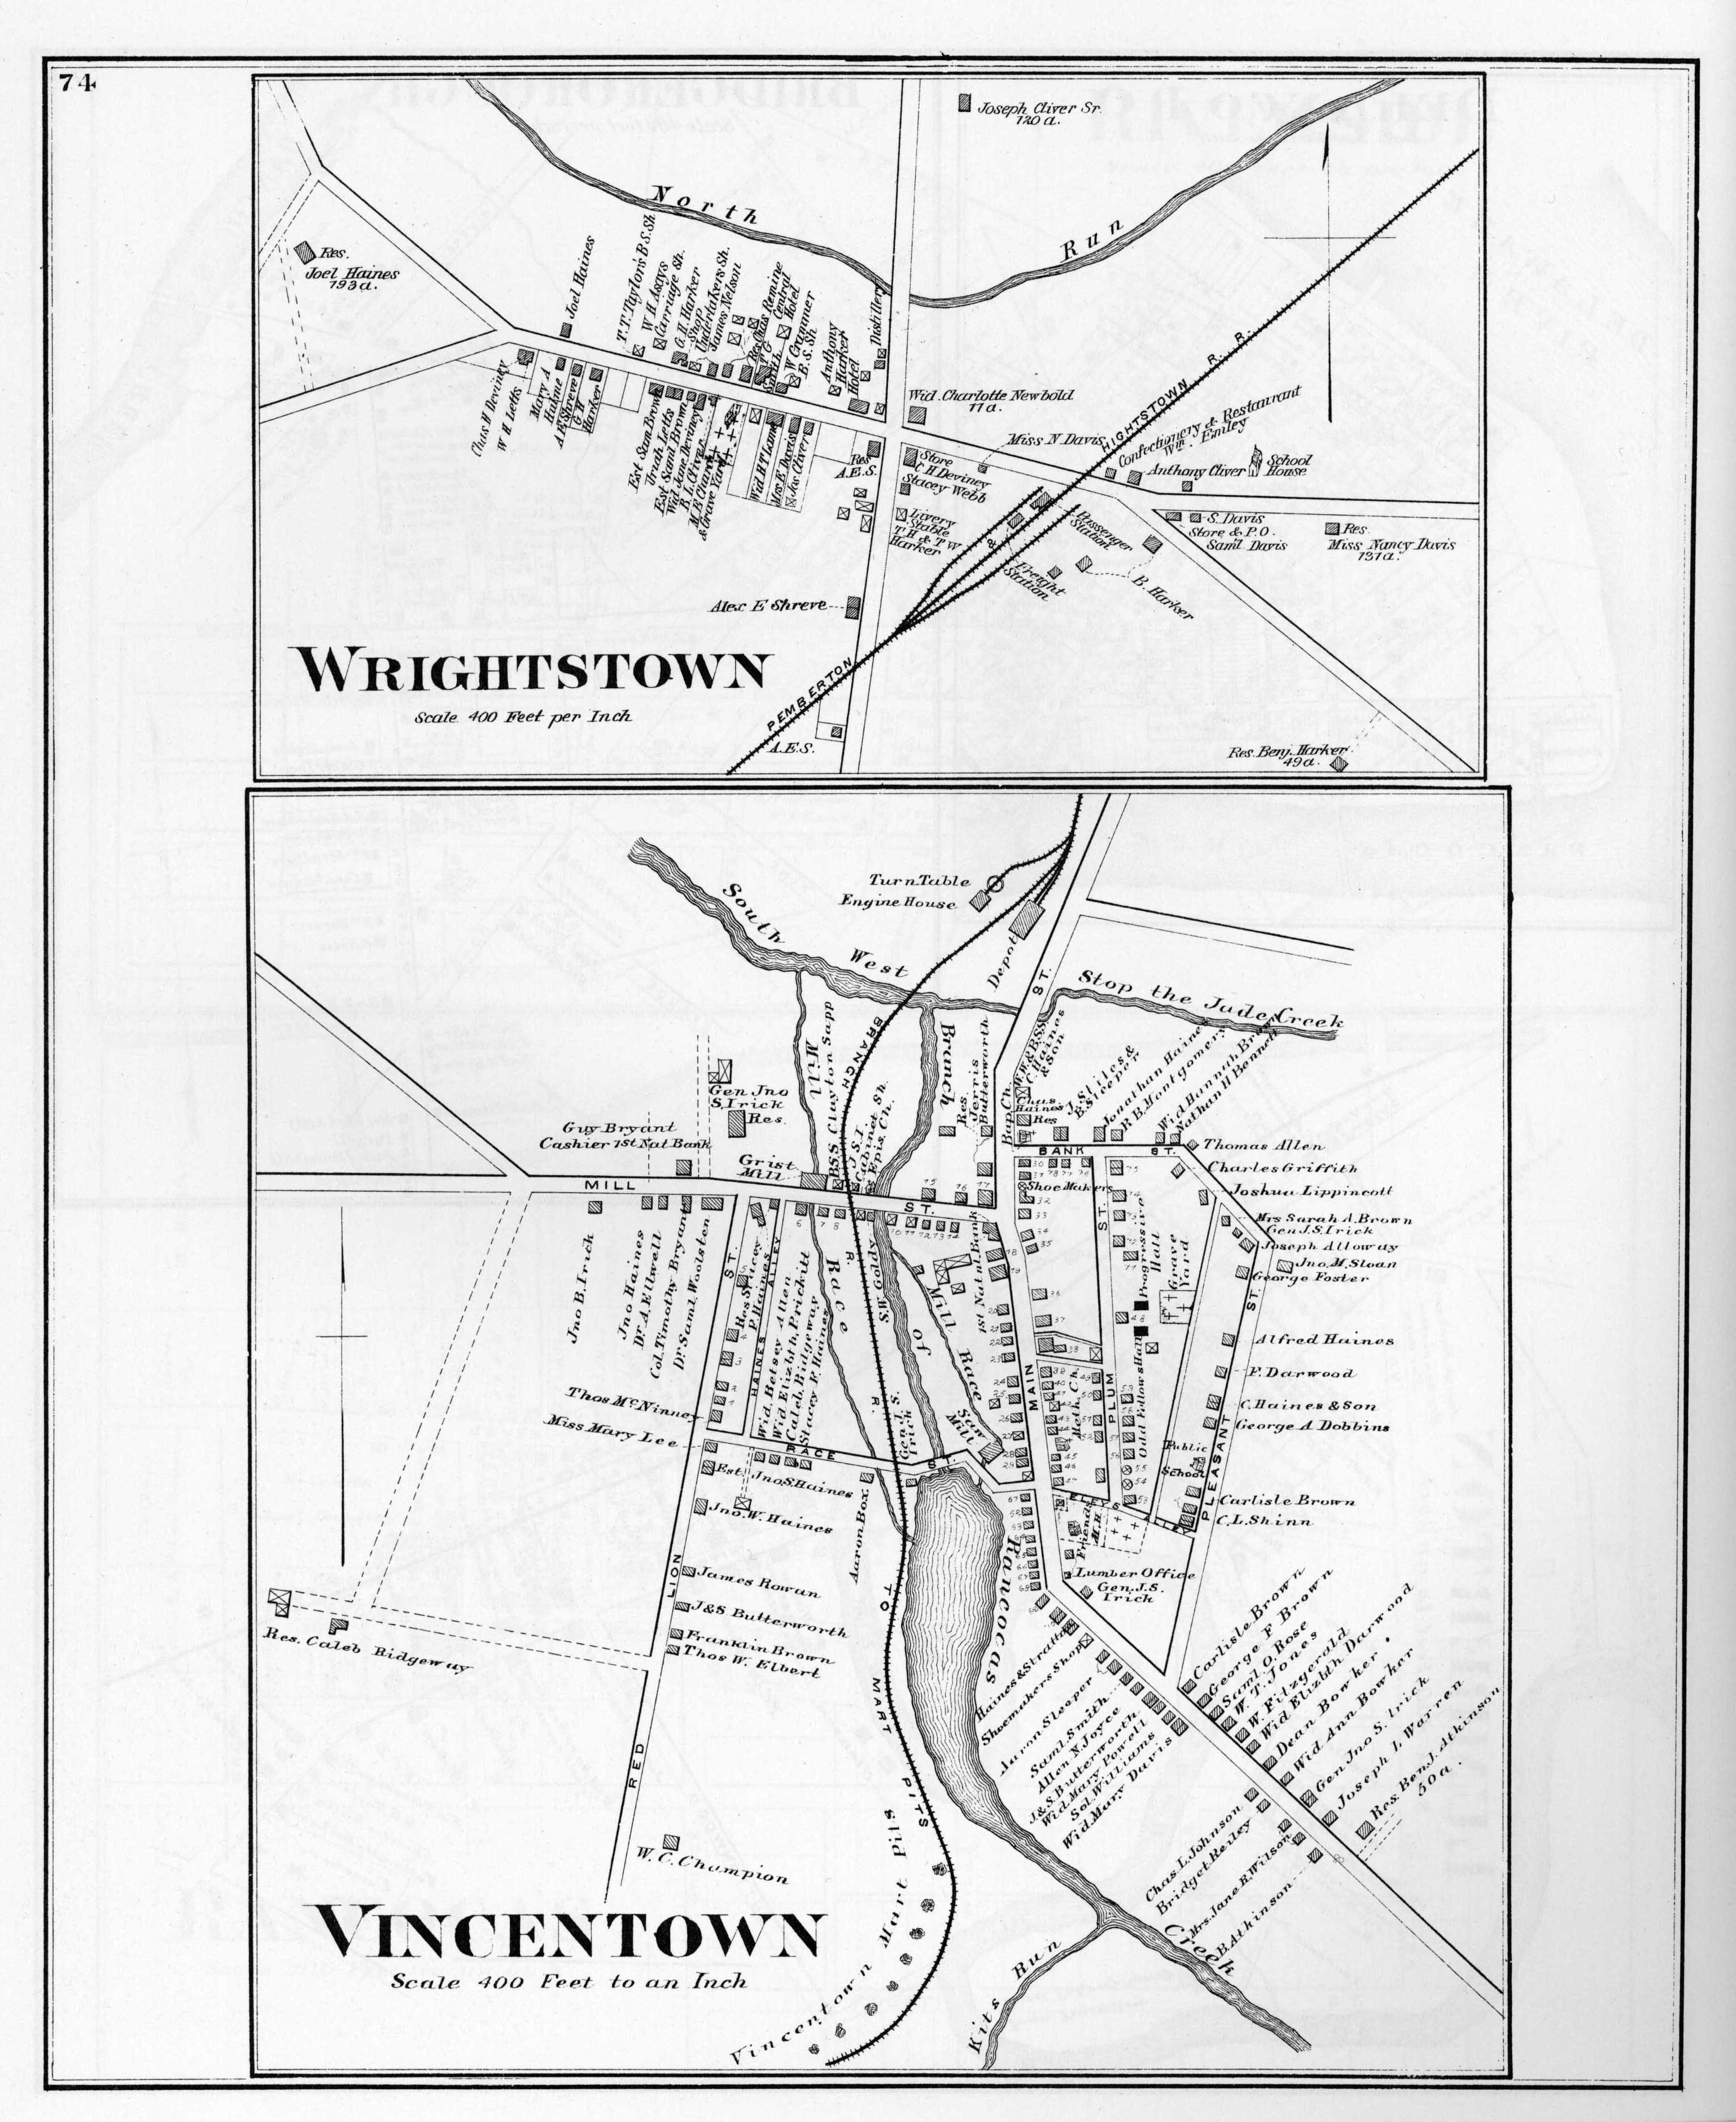 West Jersey History Project - Maps from J.D. Scott's ... on map of nj districts, map of nj train stations, map of nj warren, map of nj town, map of nj elevation, map of nj by city, map sc county, map of nj hunting zones, map of nj shoreline, map of nj jackson, map of nj interstates, new york nj county, map of nj coast, map of nj township, map of nj colony, map of nj utilities, map of nj regions, map of nj counties, map of nj state, map nc county,